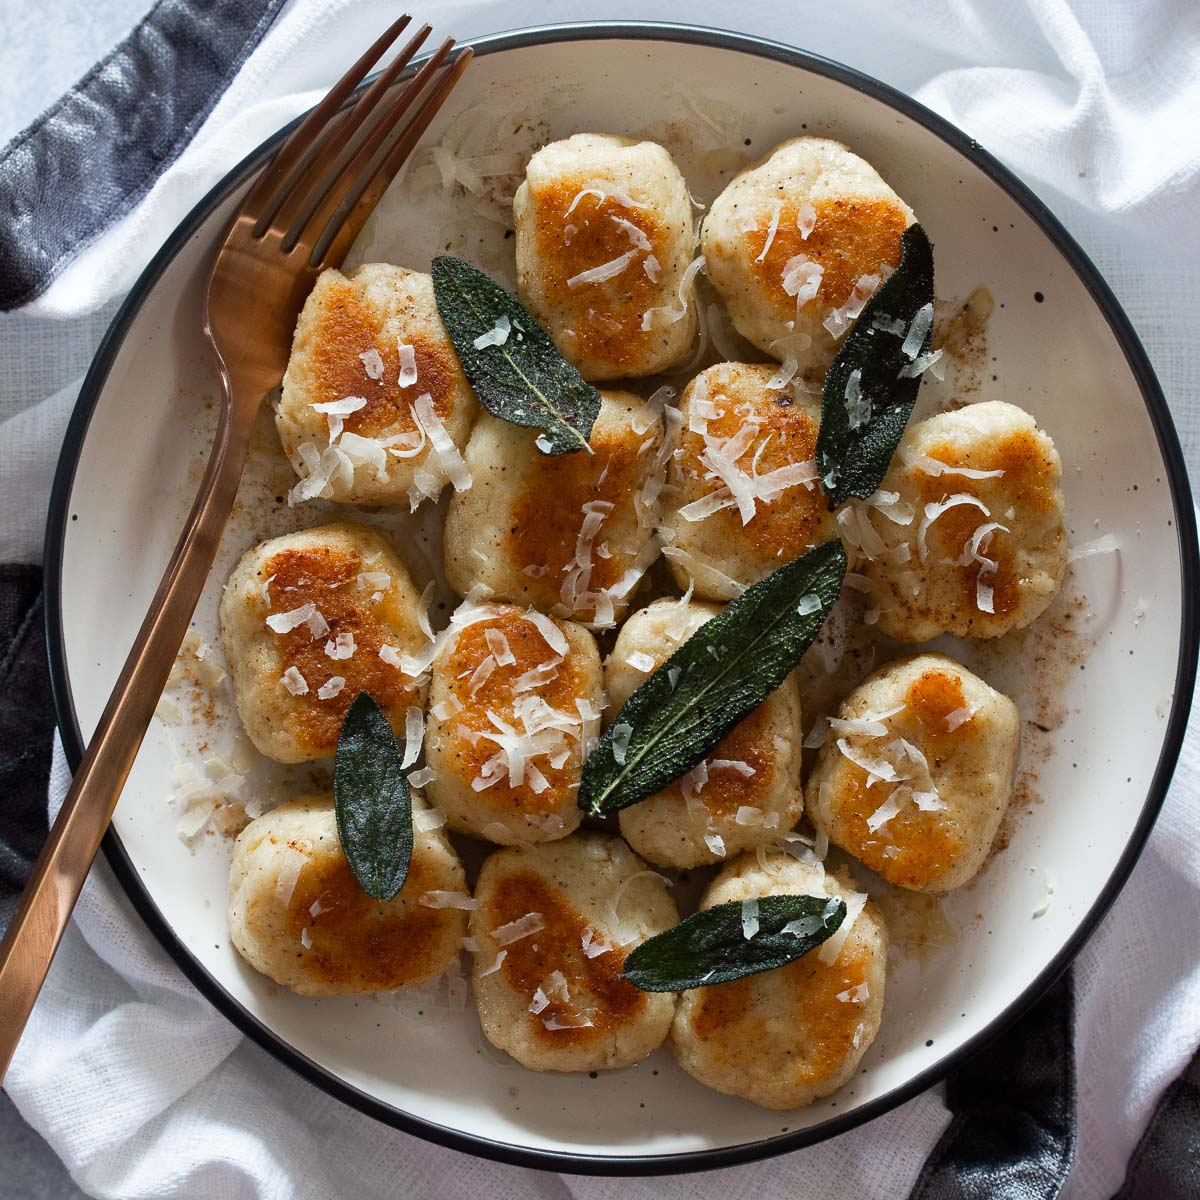 Ricotta gnocchi plated and garnished with crispy sage leaves and fresh grated parmesan